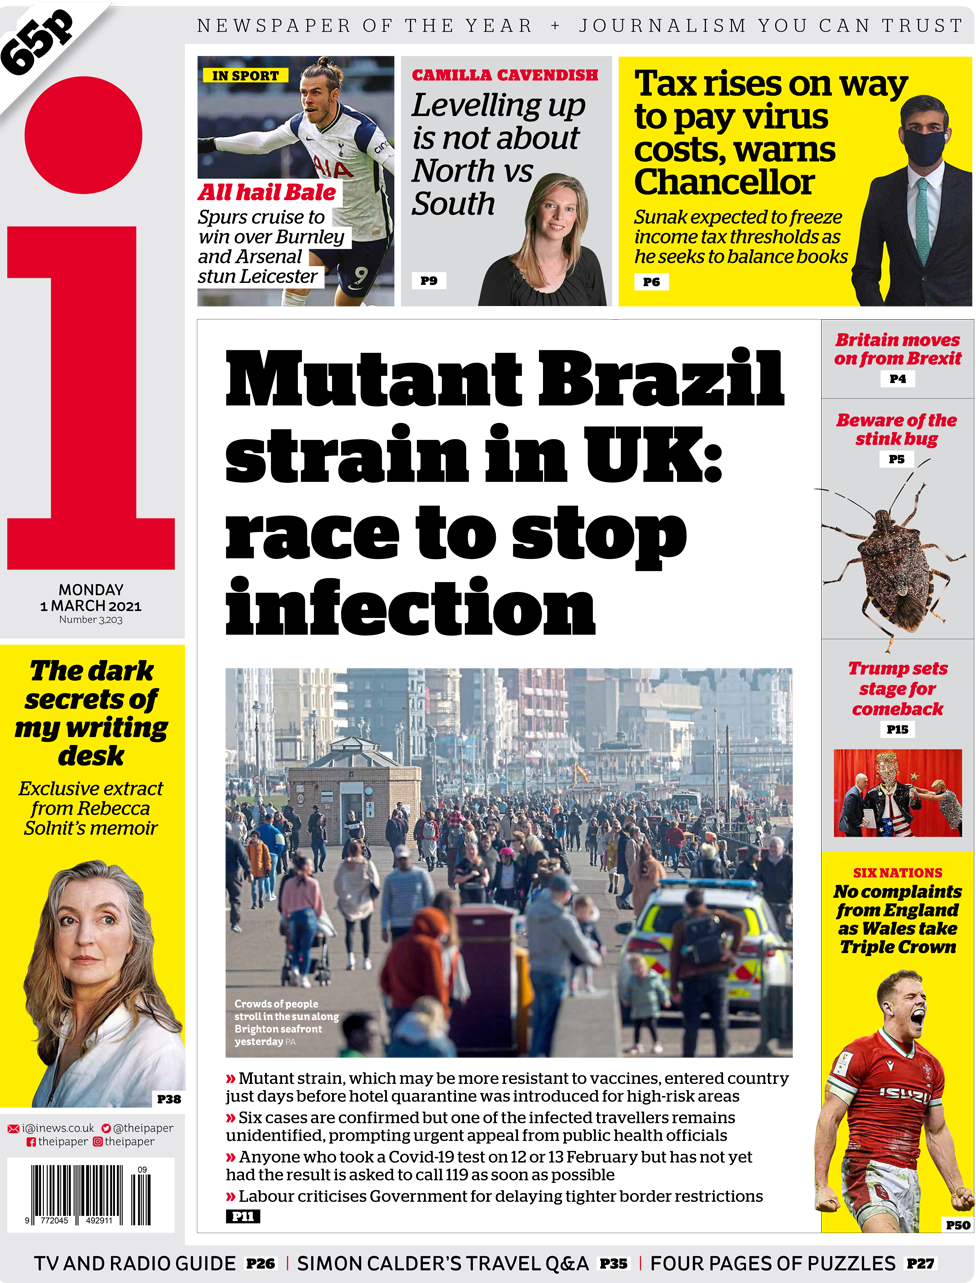 The i front page 1 March 2021